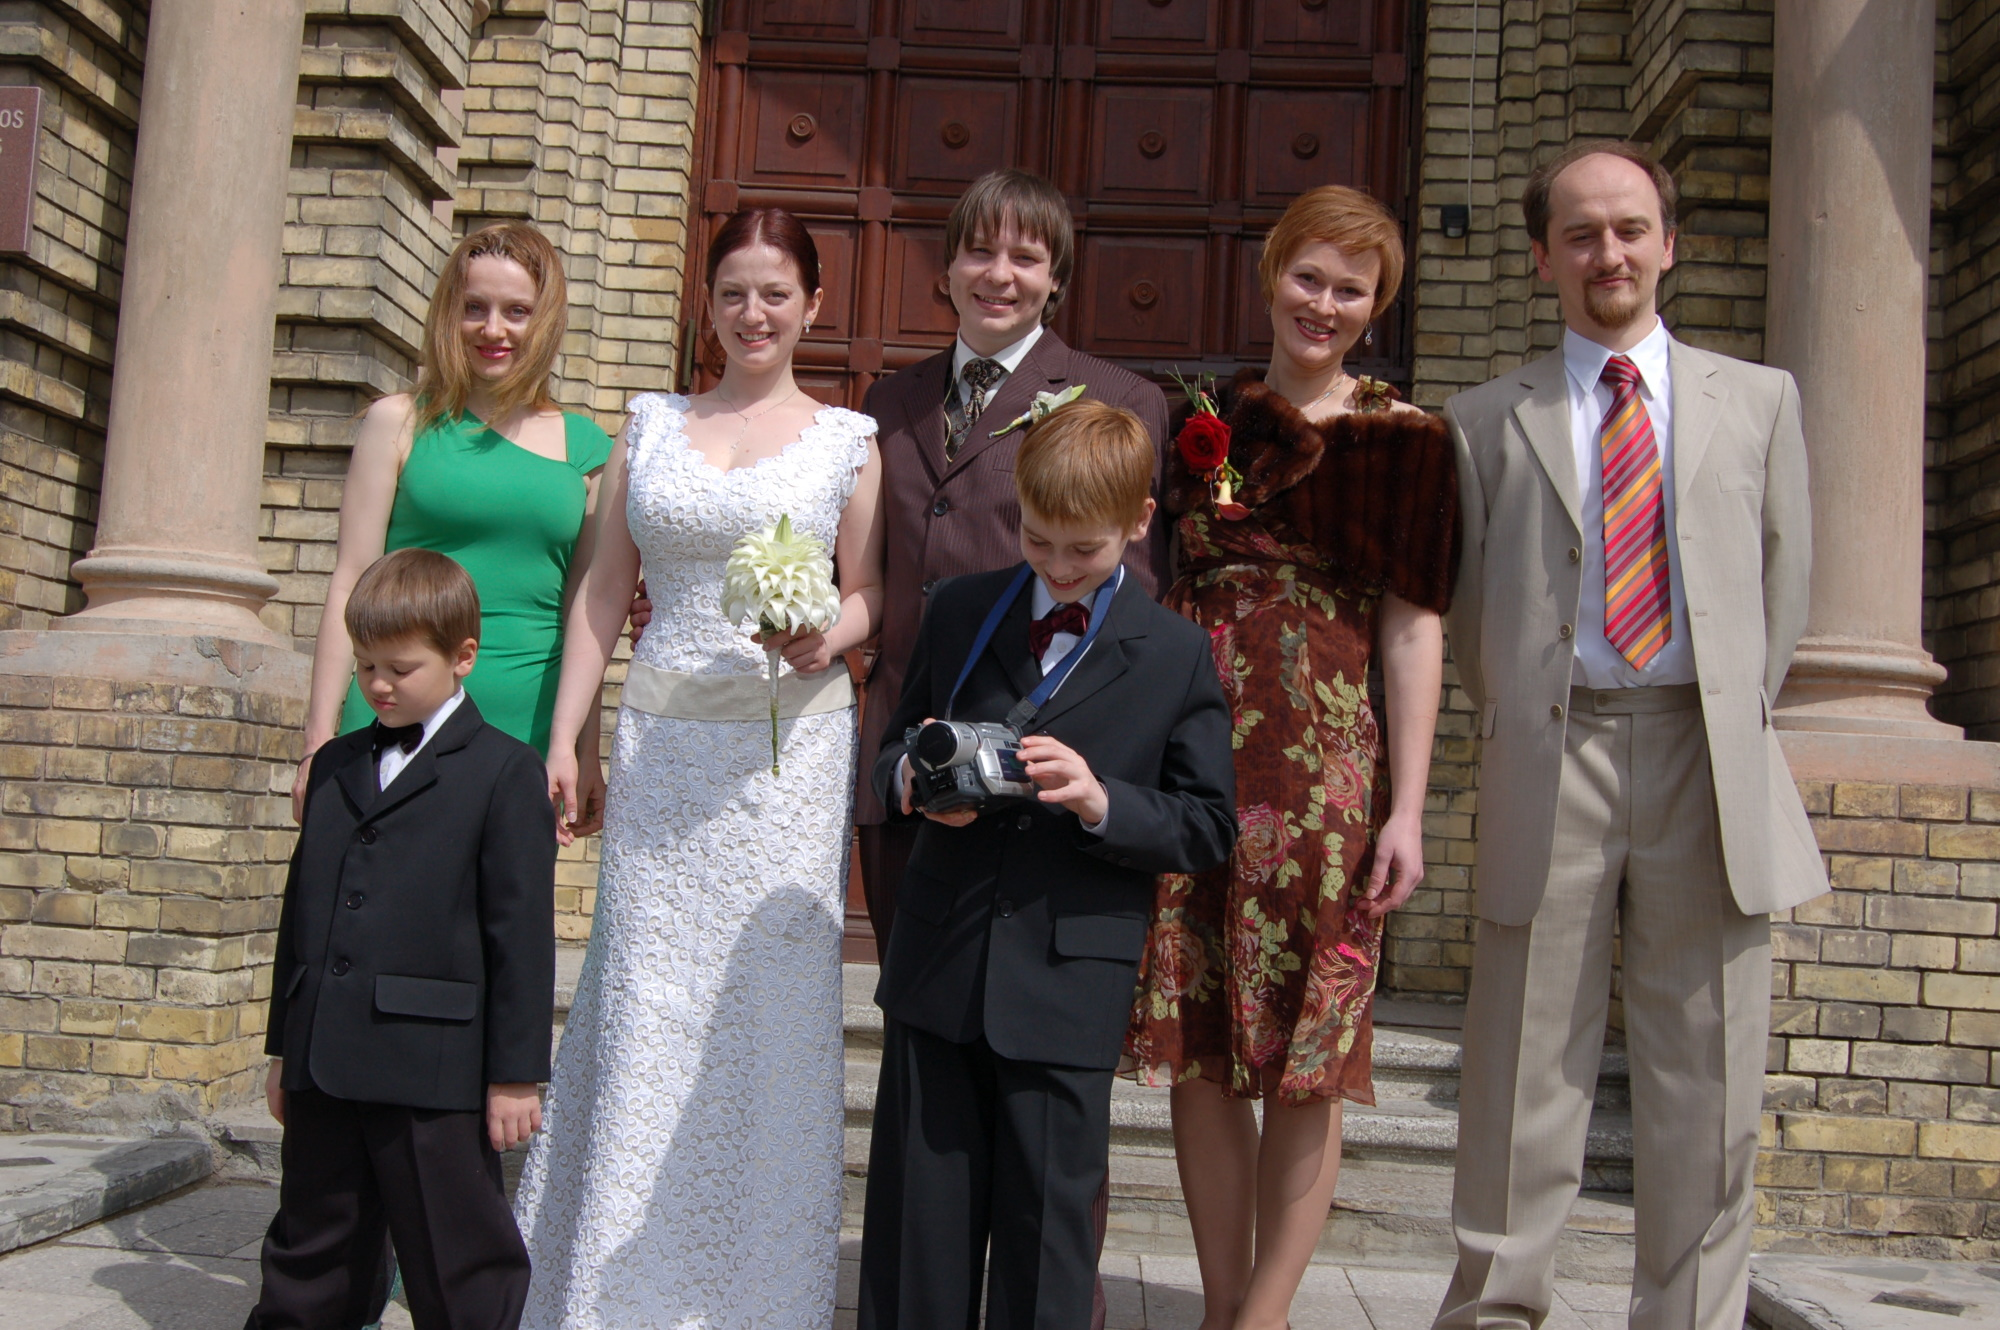 Me, my brother and his family, and the newlyweds